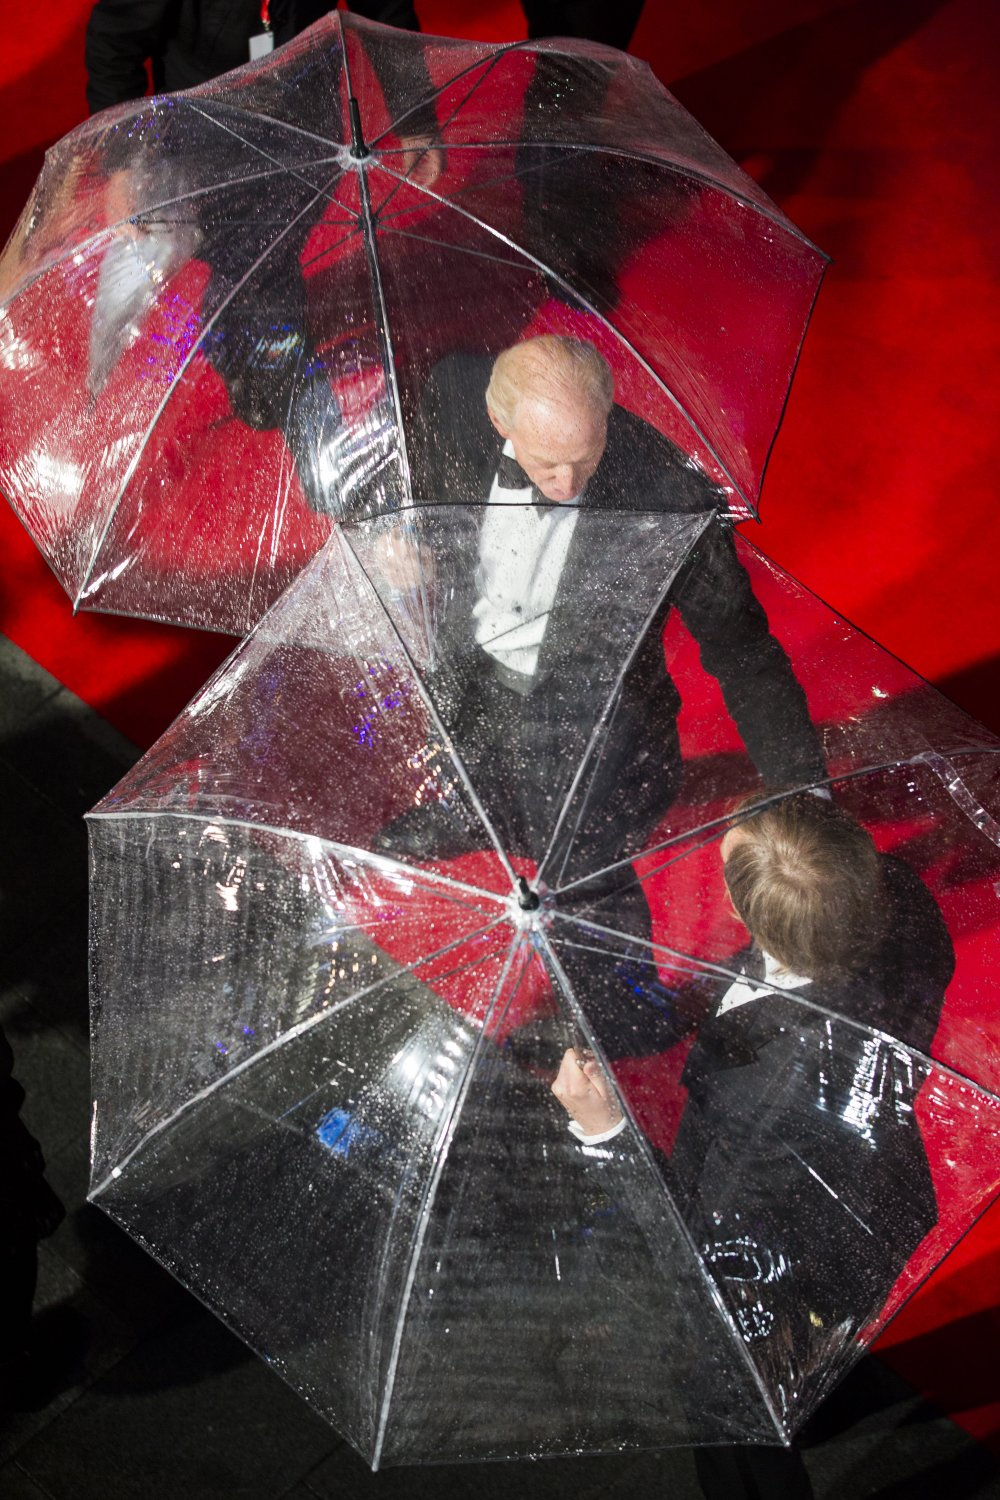 Charles Dance and Morten Tyldum on the red carpet for The Imitation Game at the 58th BFI London Film Festival